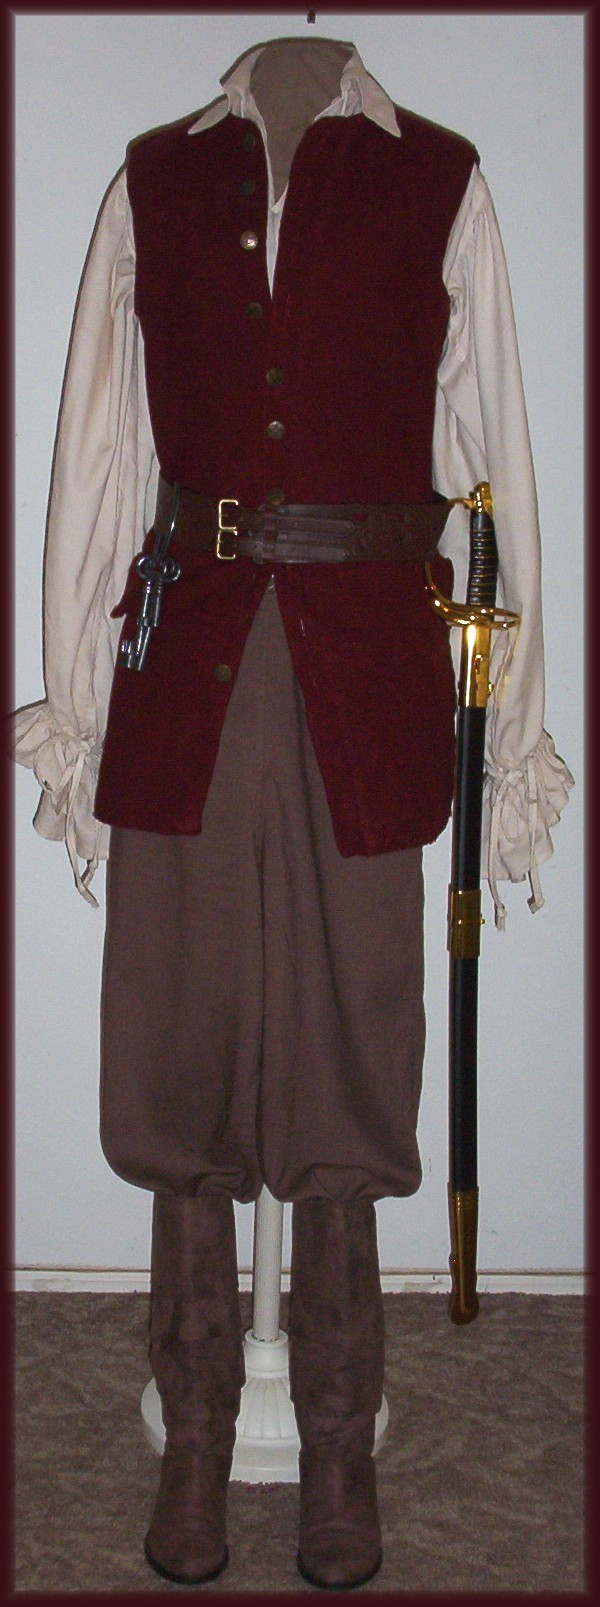 Elizabeth Swann Pirate Costume 032.jpg